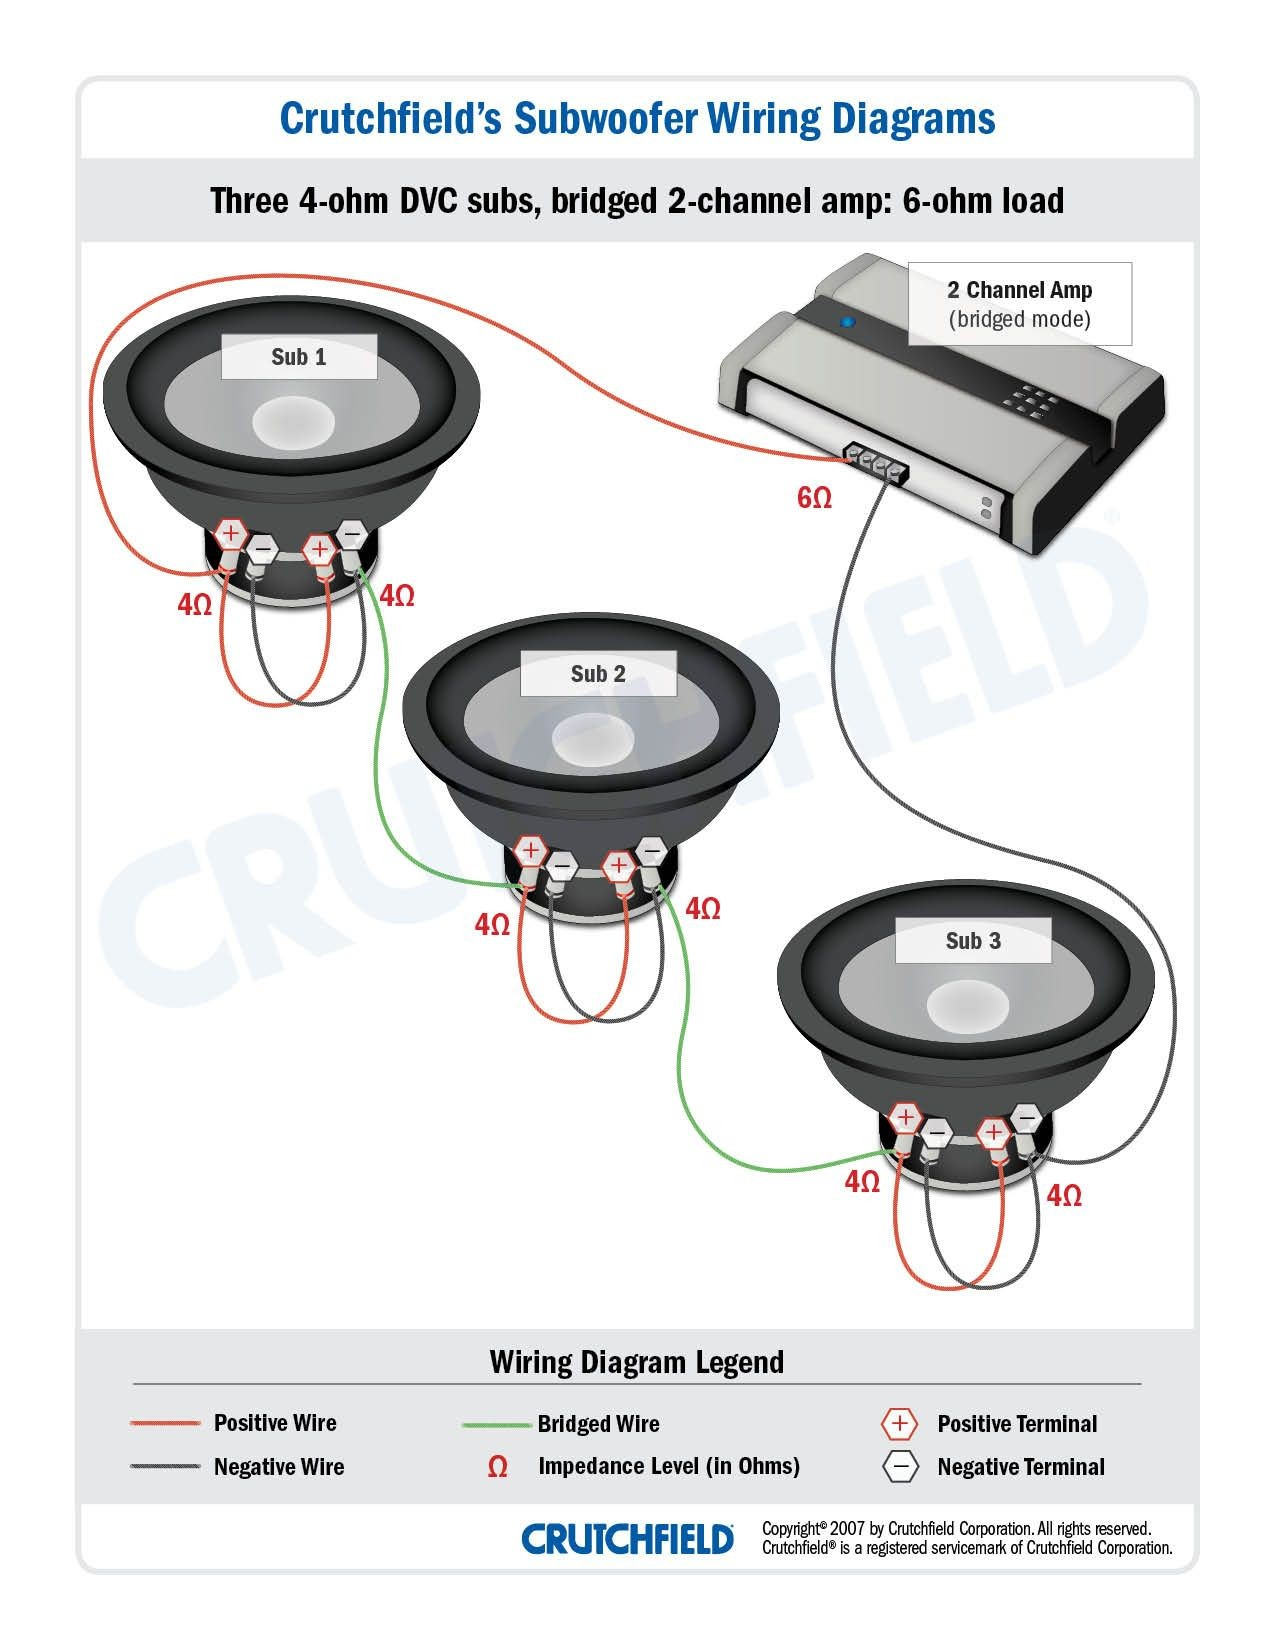 Top 10 Subwoofer Wiring Diagram Free Download 3 DVC 4 Ohm 2 Ch Top 10 Subwoofer